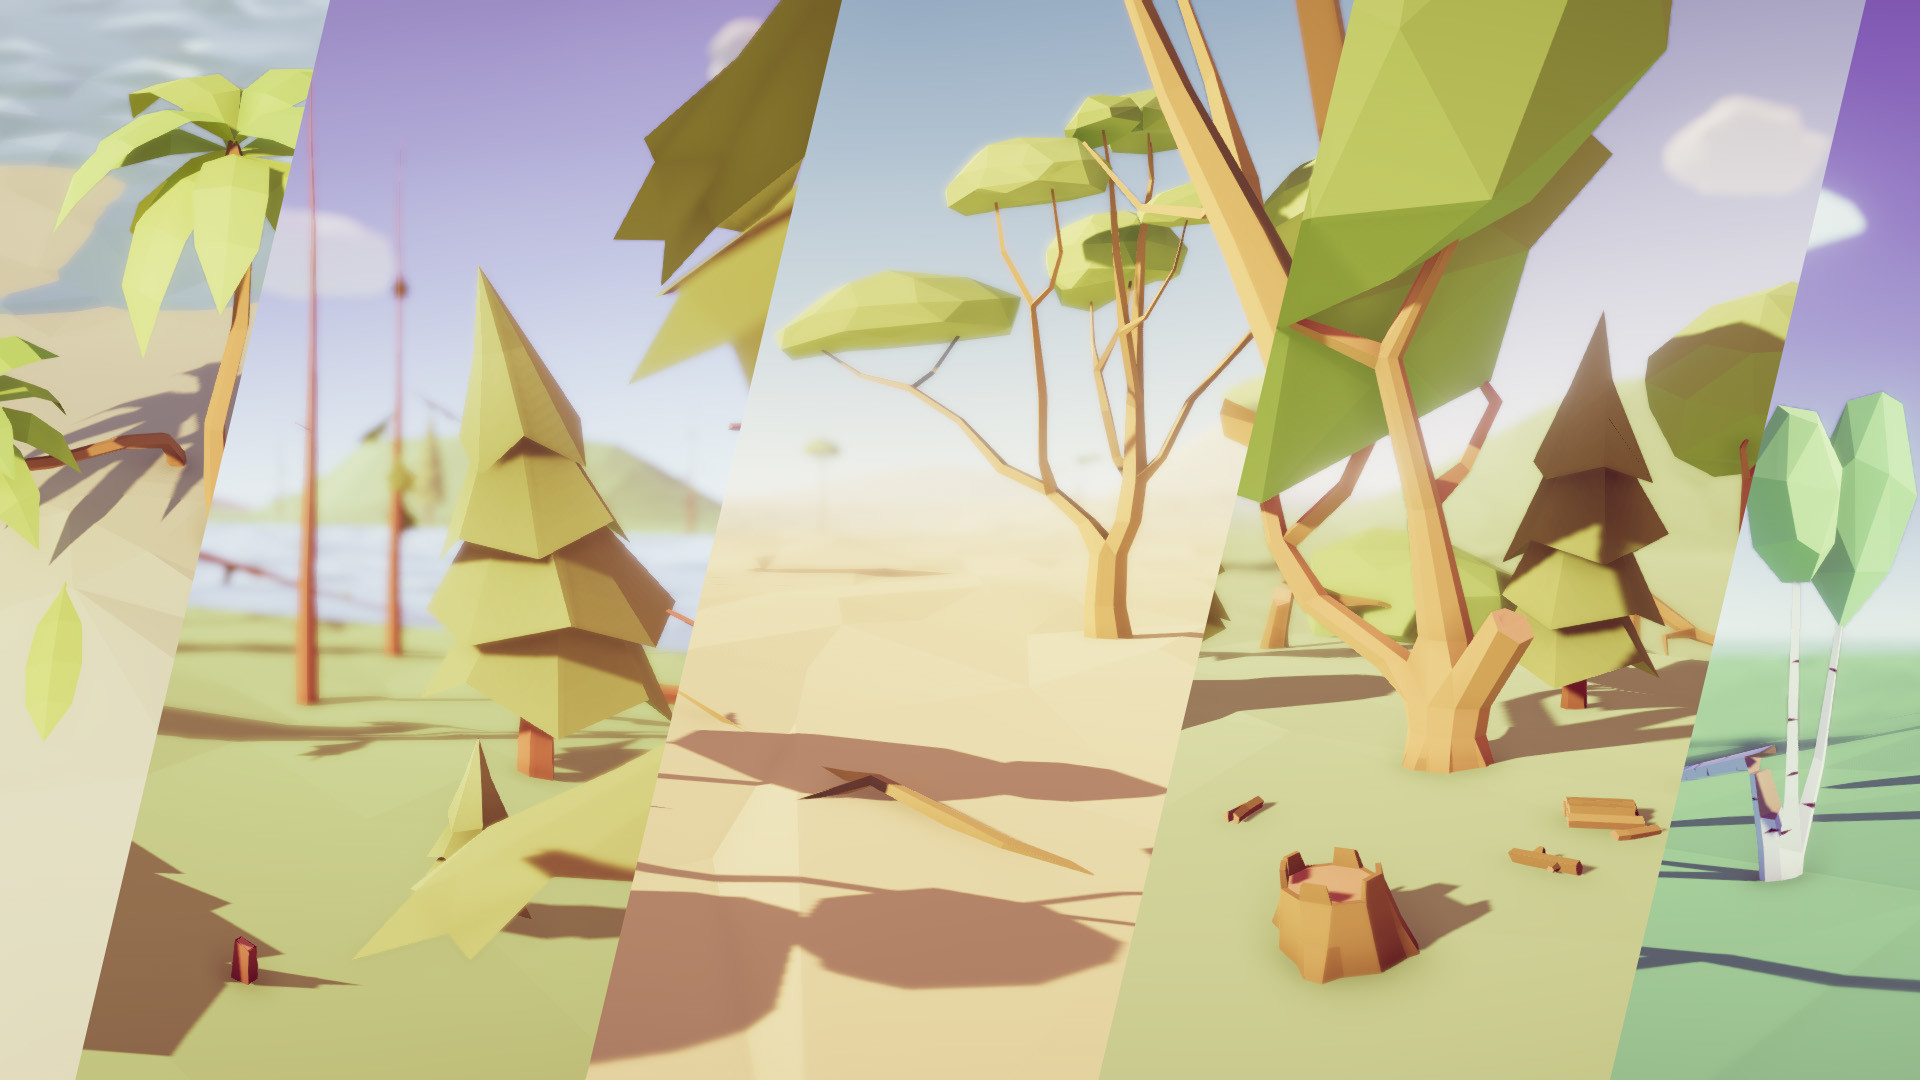 ArtStation - Low Poly Trees Pack - Unity Asset Store